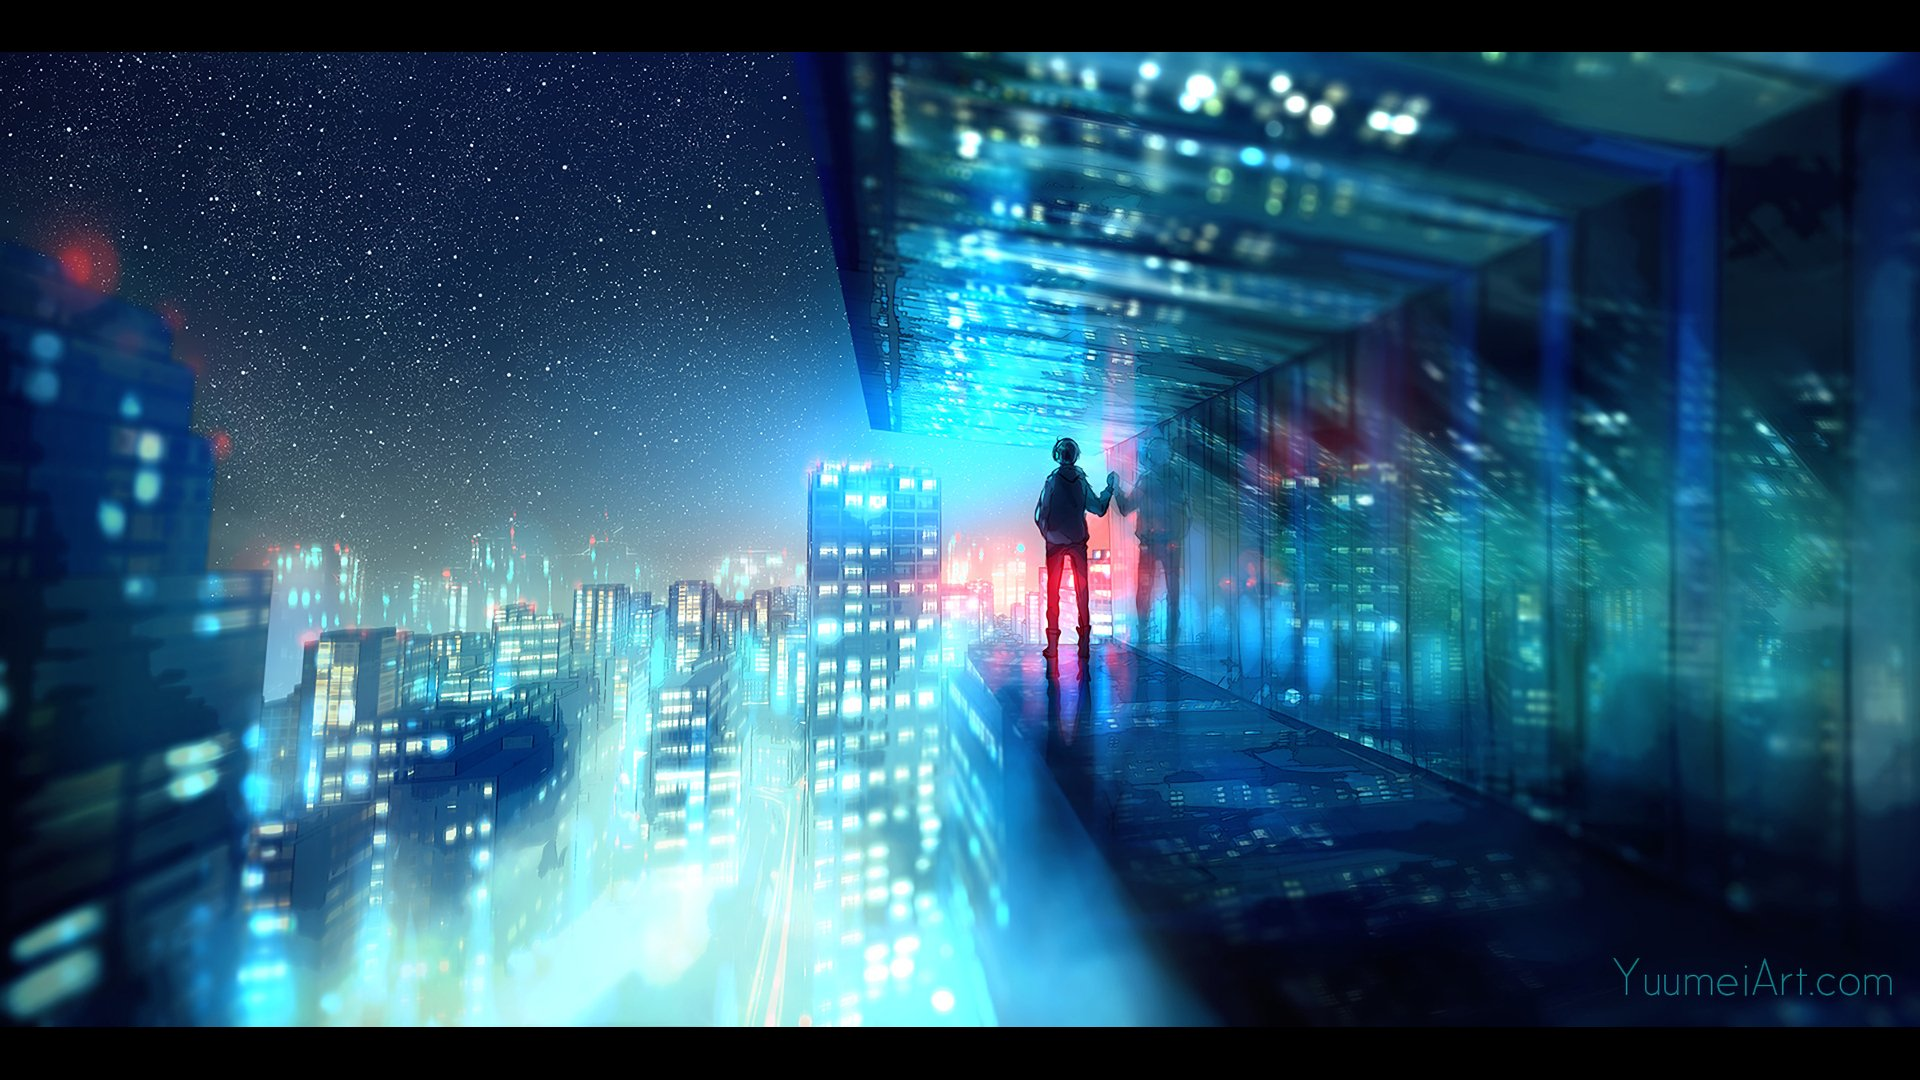 Anime - Original  Cityscape Original (Anime) Wallpaper